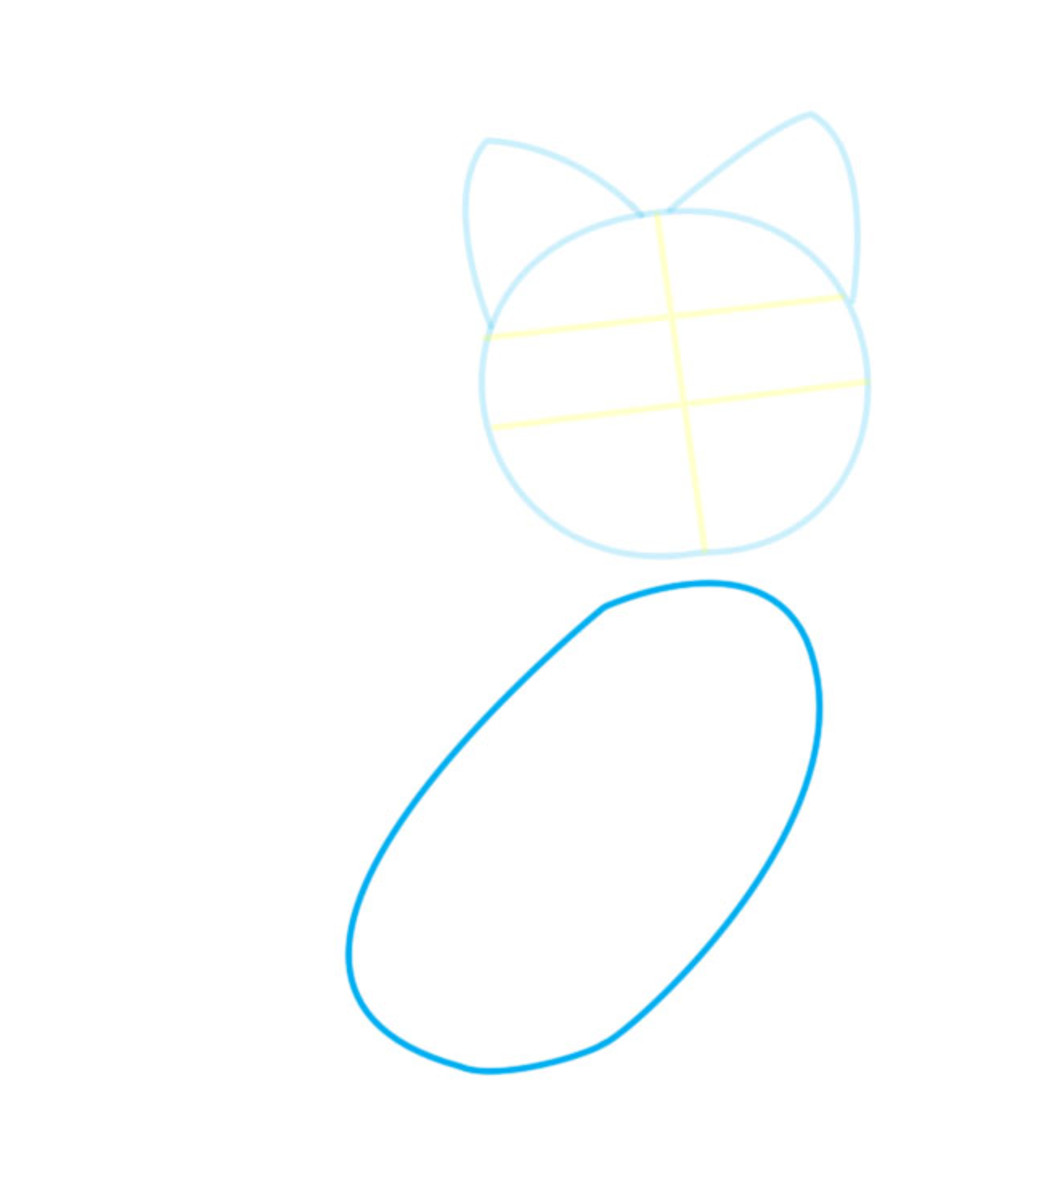 Draw the body just below the head. The two shapes should not meet or overlap.